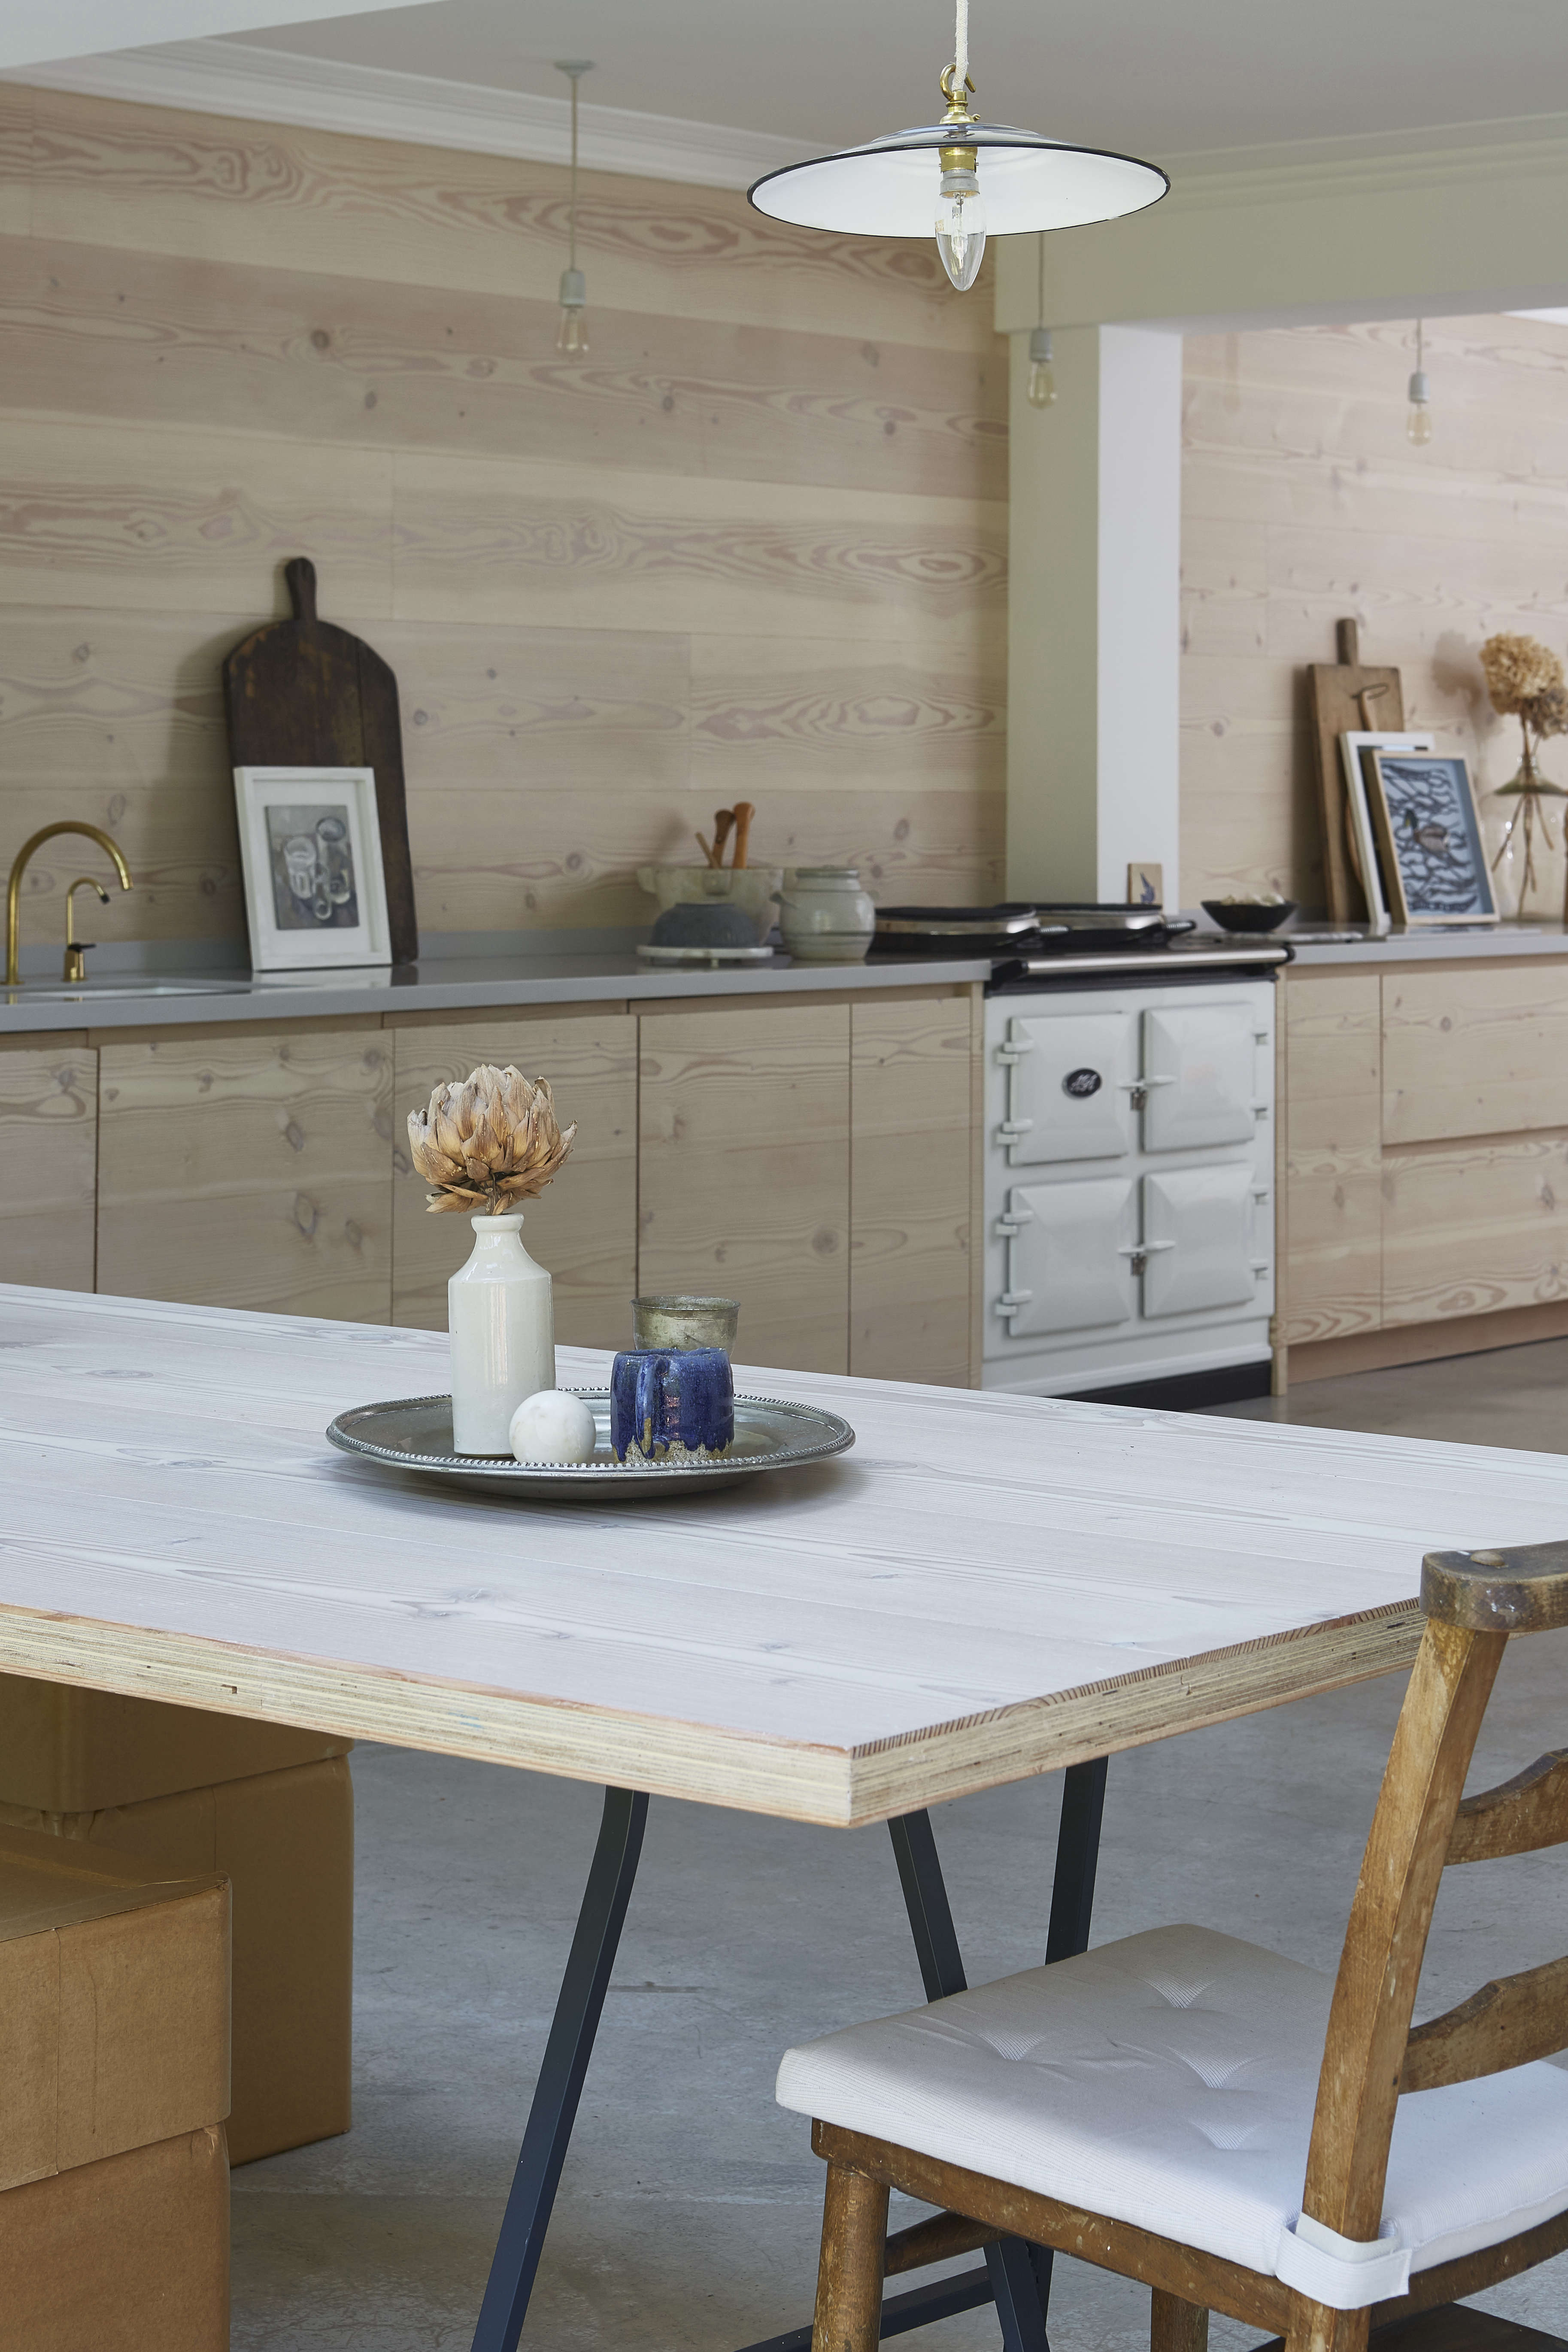 dougls fir cabinets, wall paneling, and table in a scandinavian style kitchen i 18